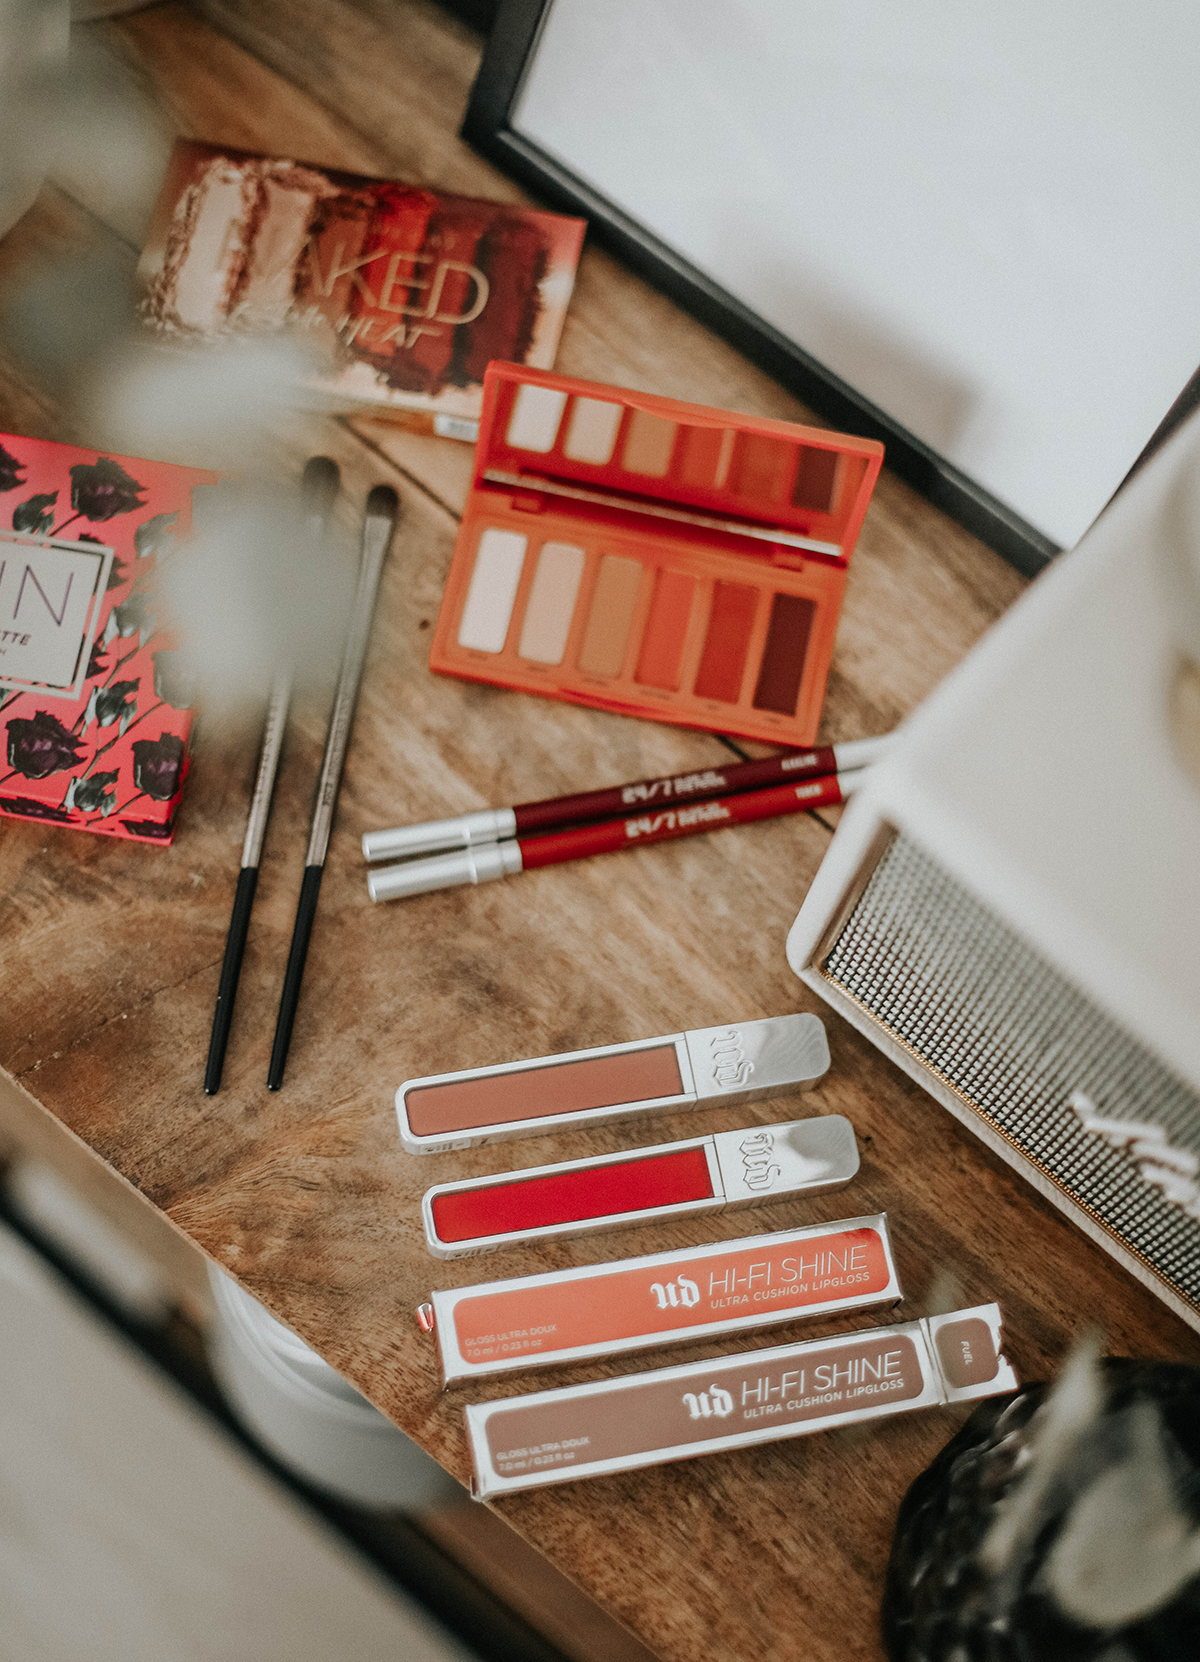 naked-heat-petite-urban-decay-descuento-friends-fanatic2